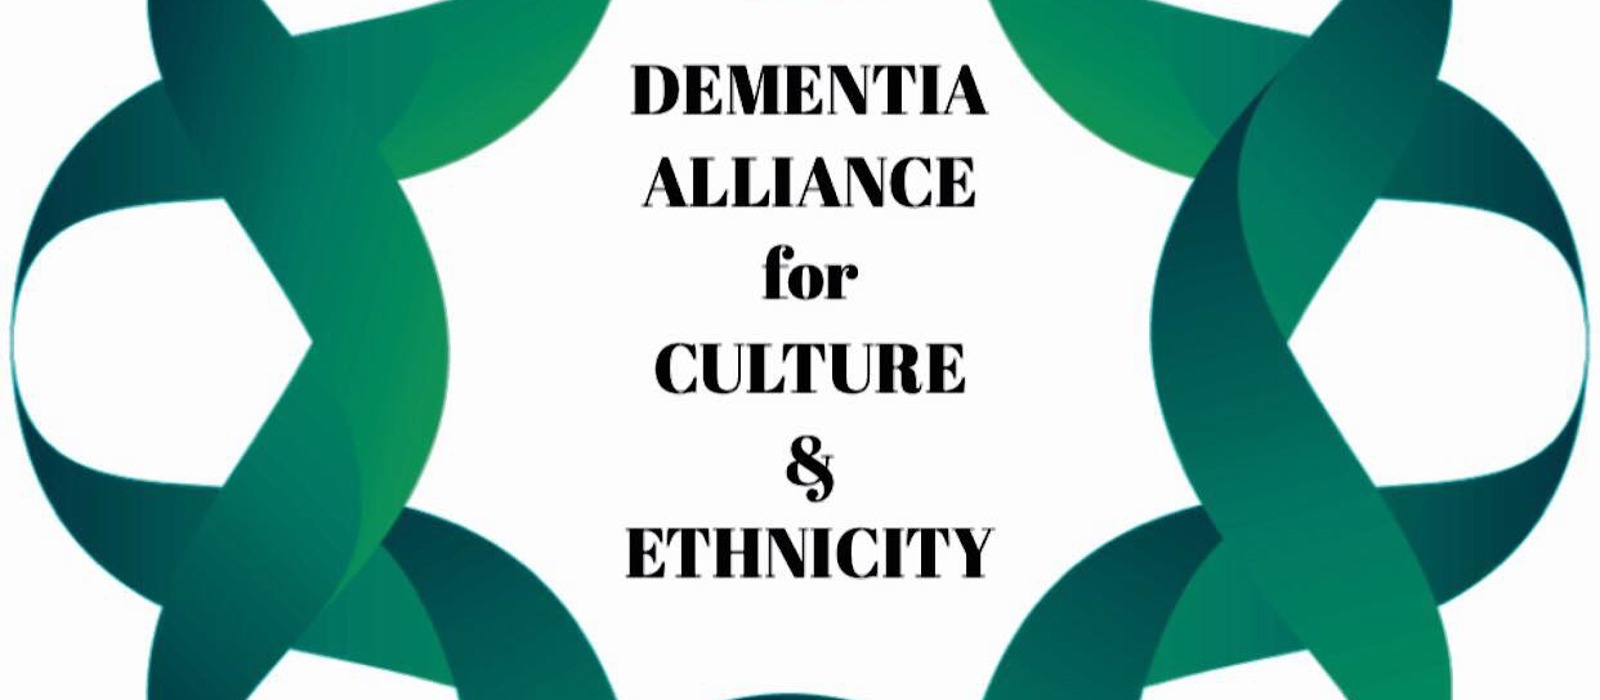 Dementia Alliance for Culture and Ethnicity (DACE)